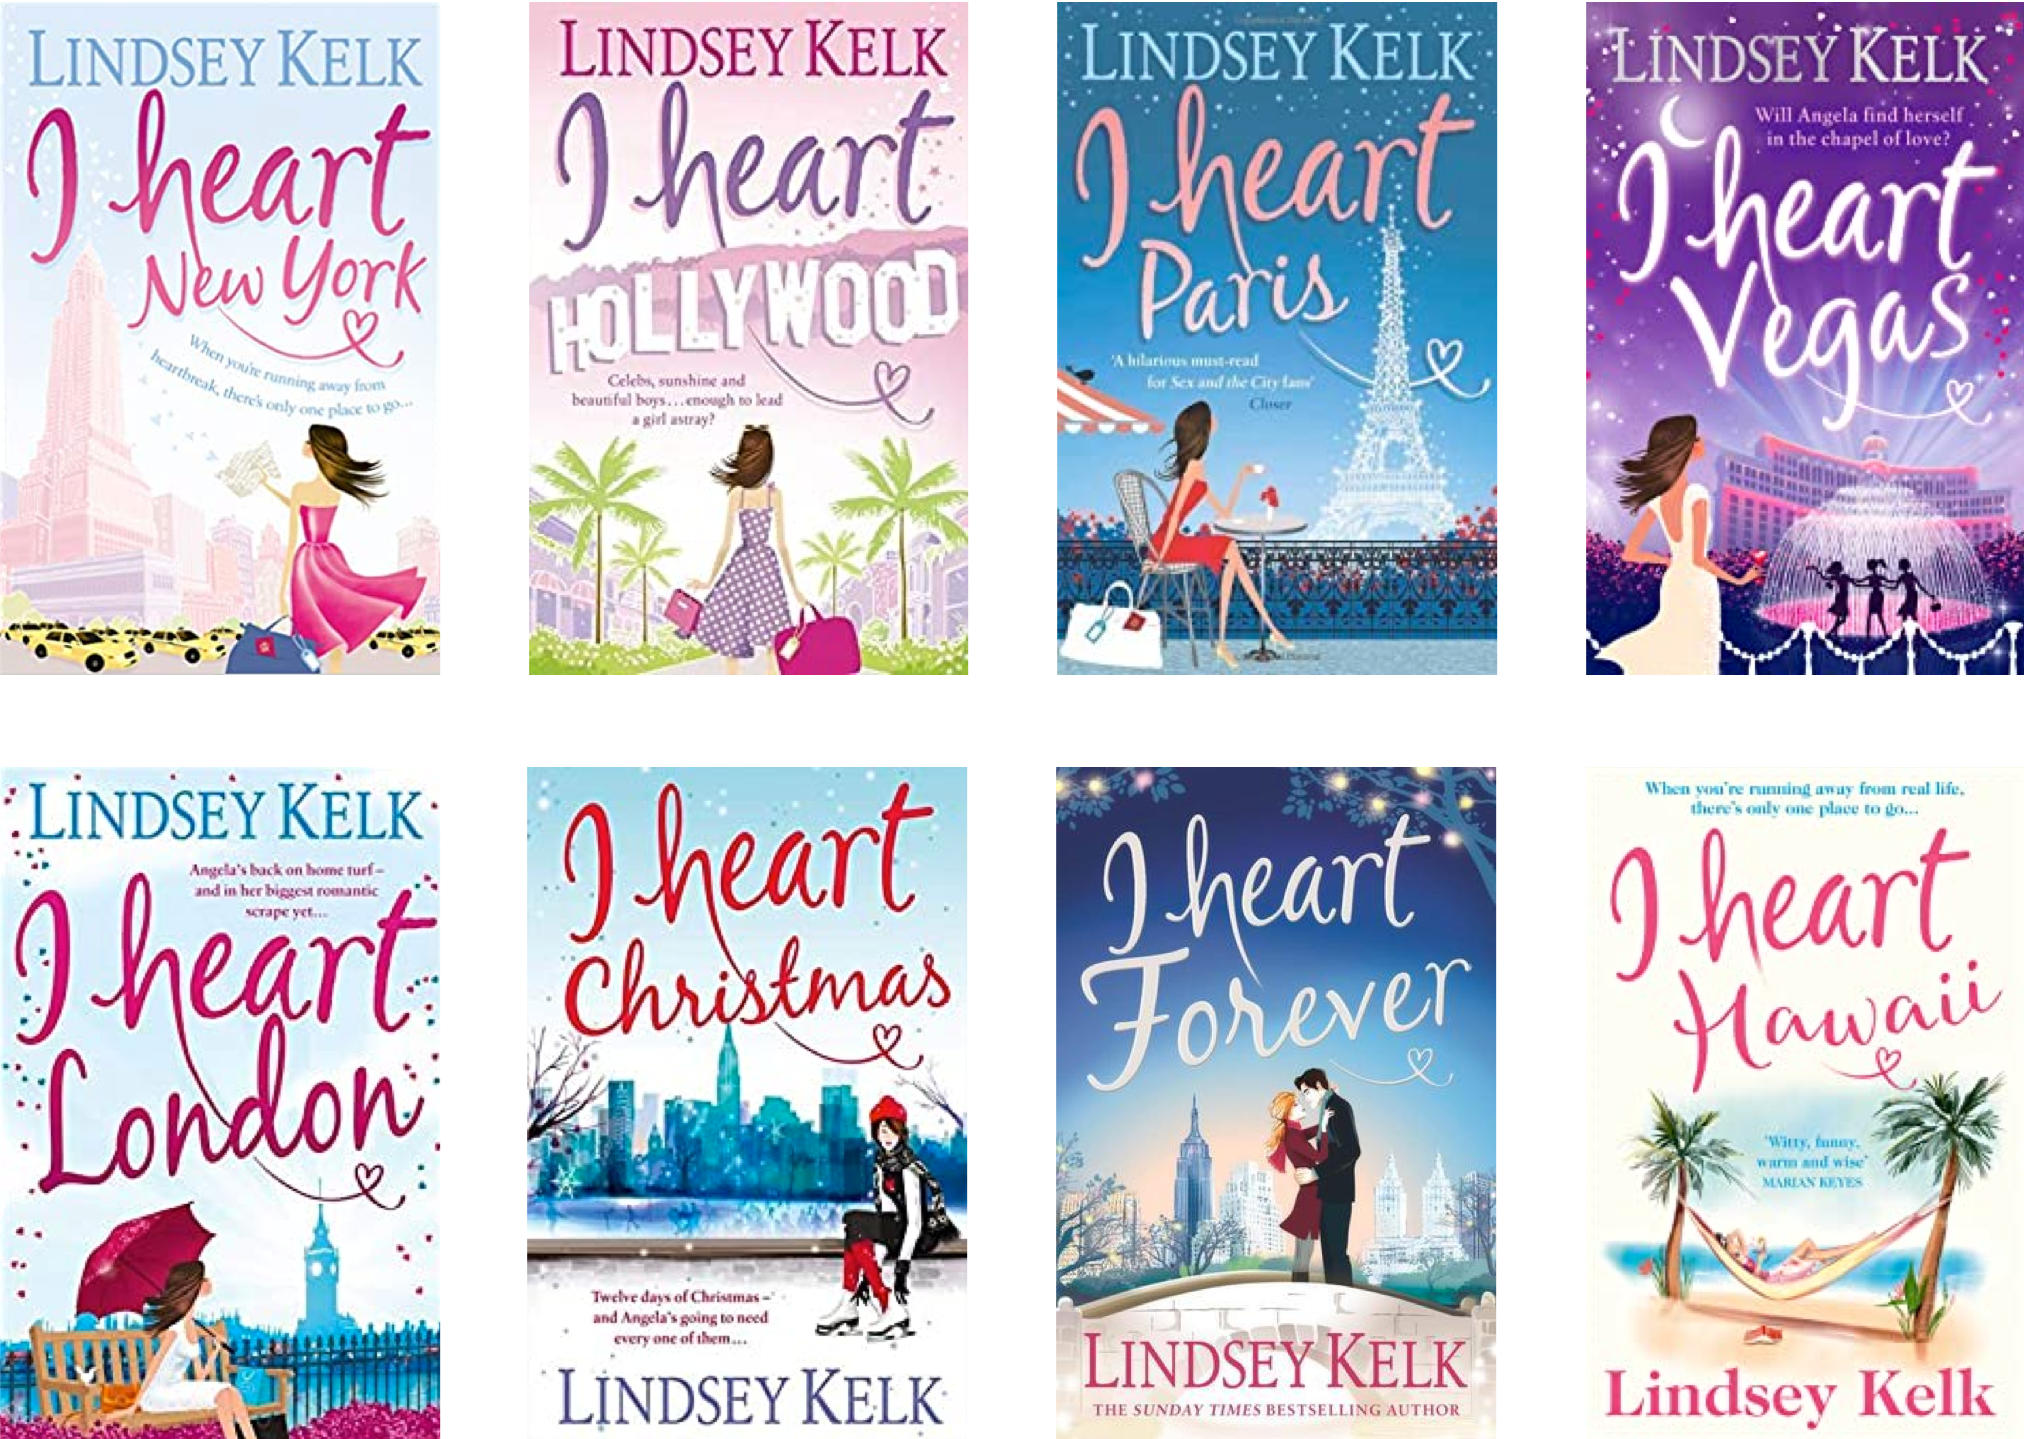 I heart series cover